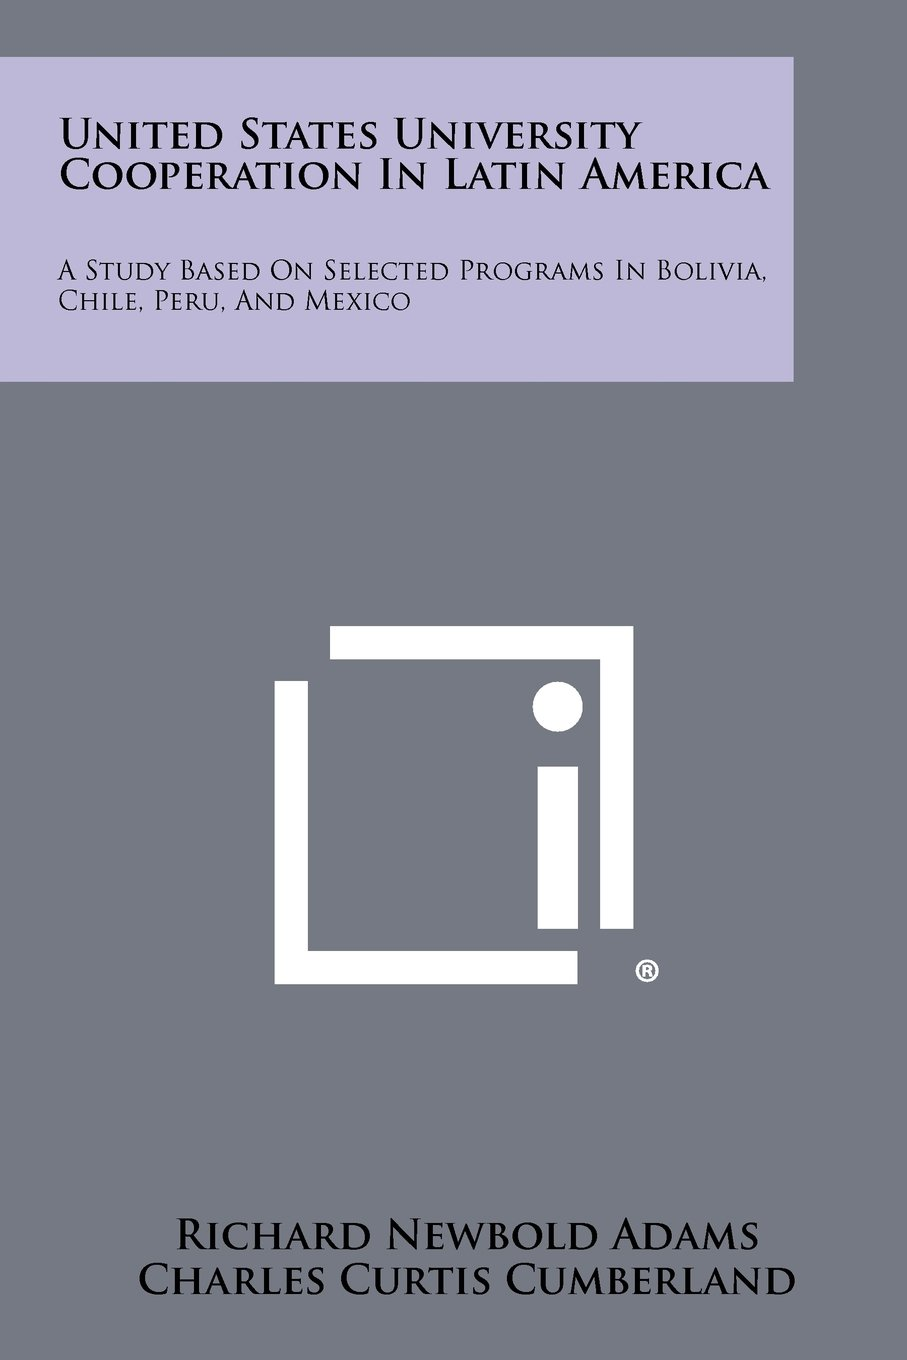 Download United States University Cooperation In Latin America: A Study Based On Selected Programs In Bolivia, Chile, Peru, And Mexico PDF